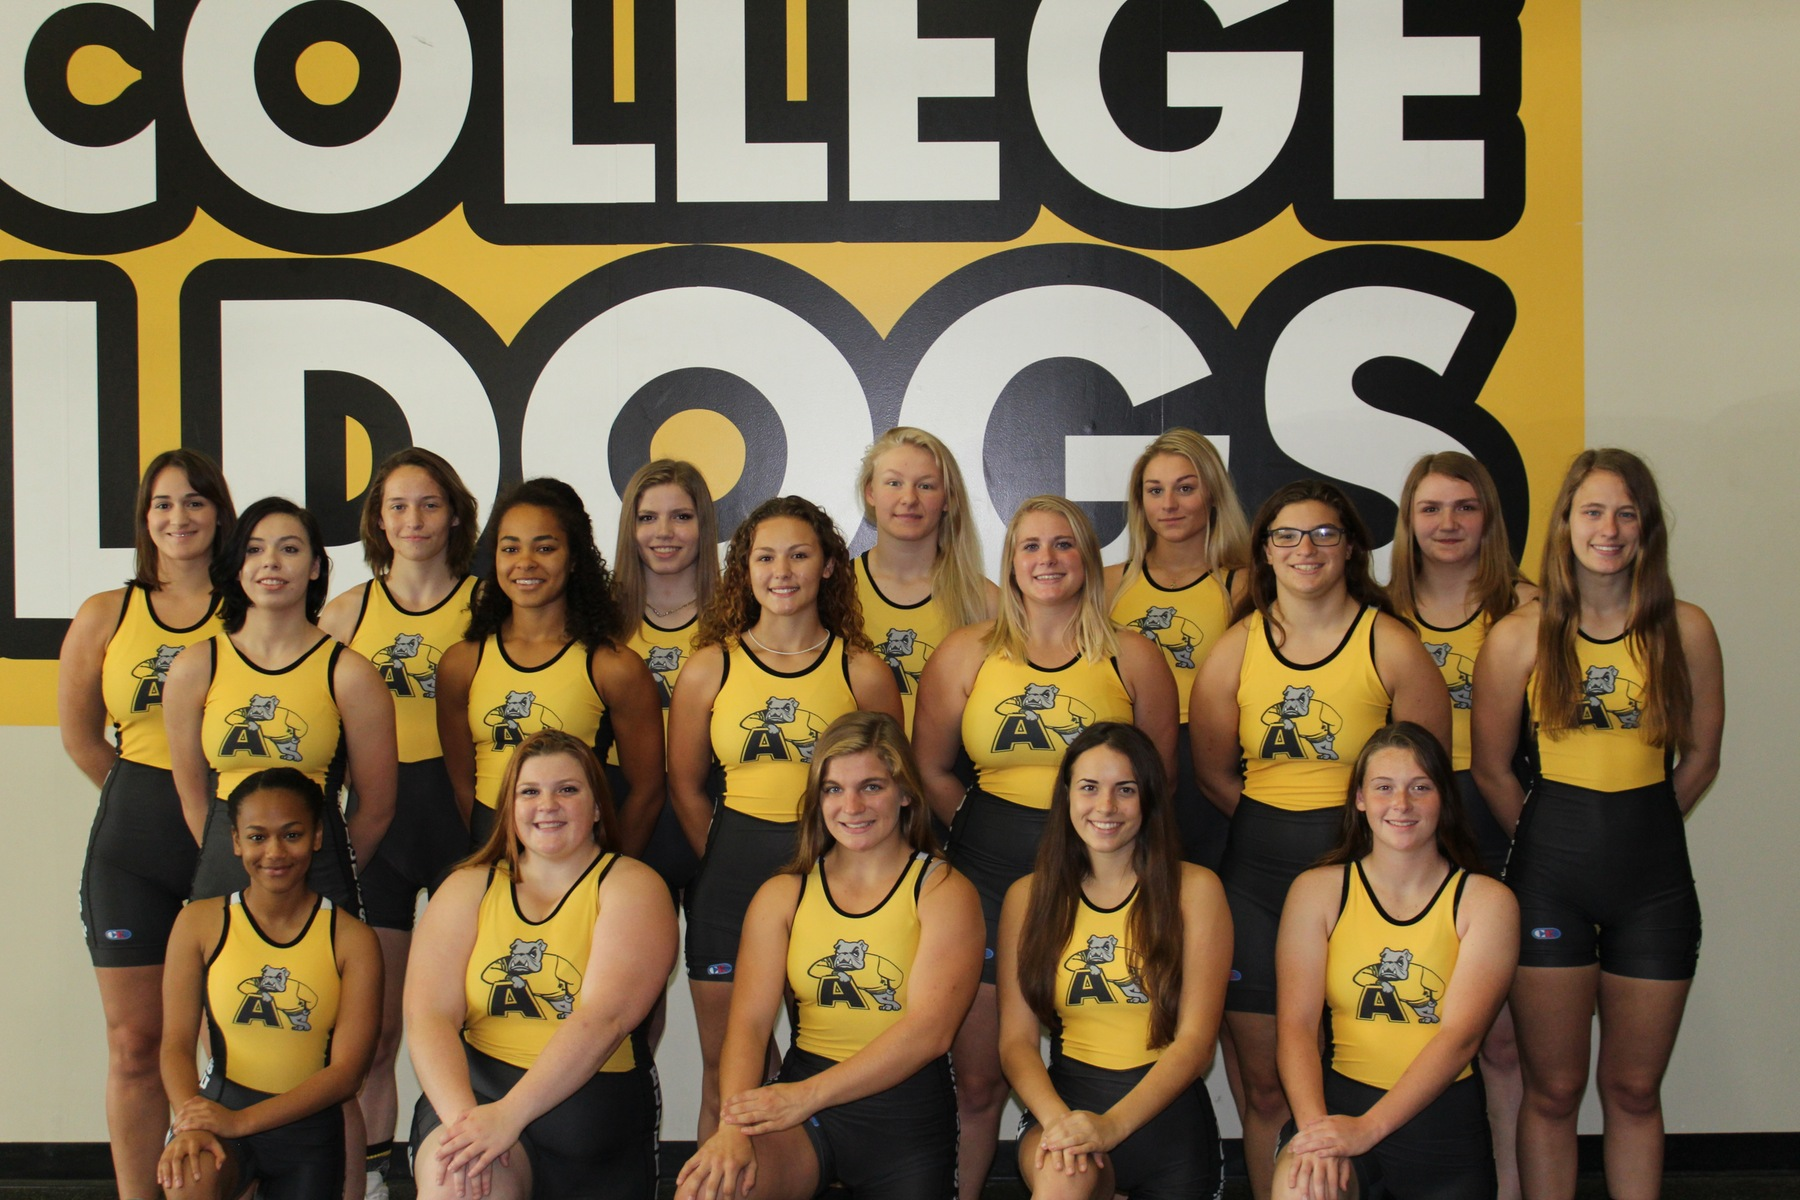 Women's Wrestling Opens Season This Weekend with High Hopes